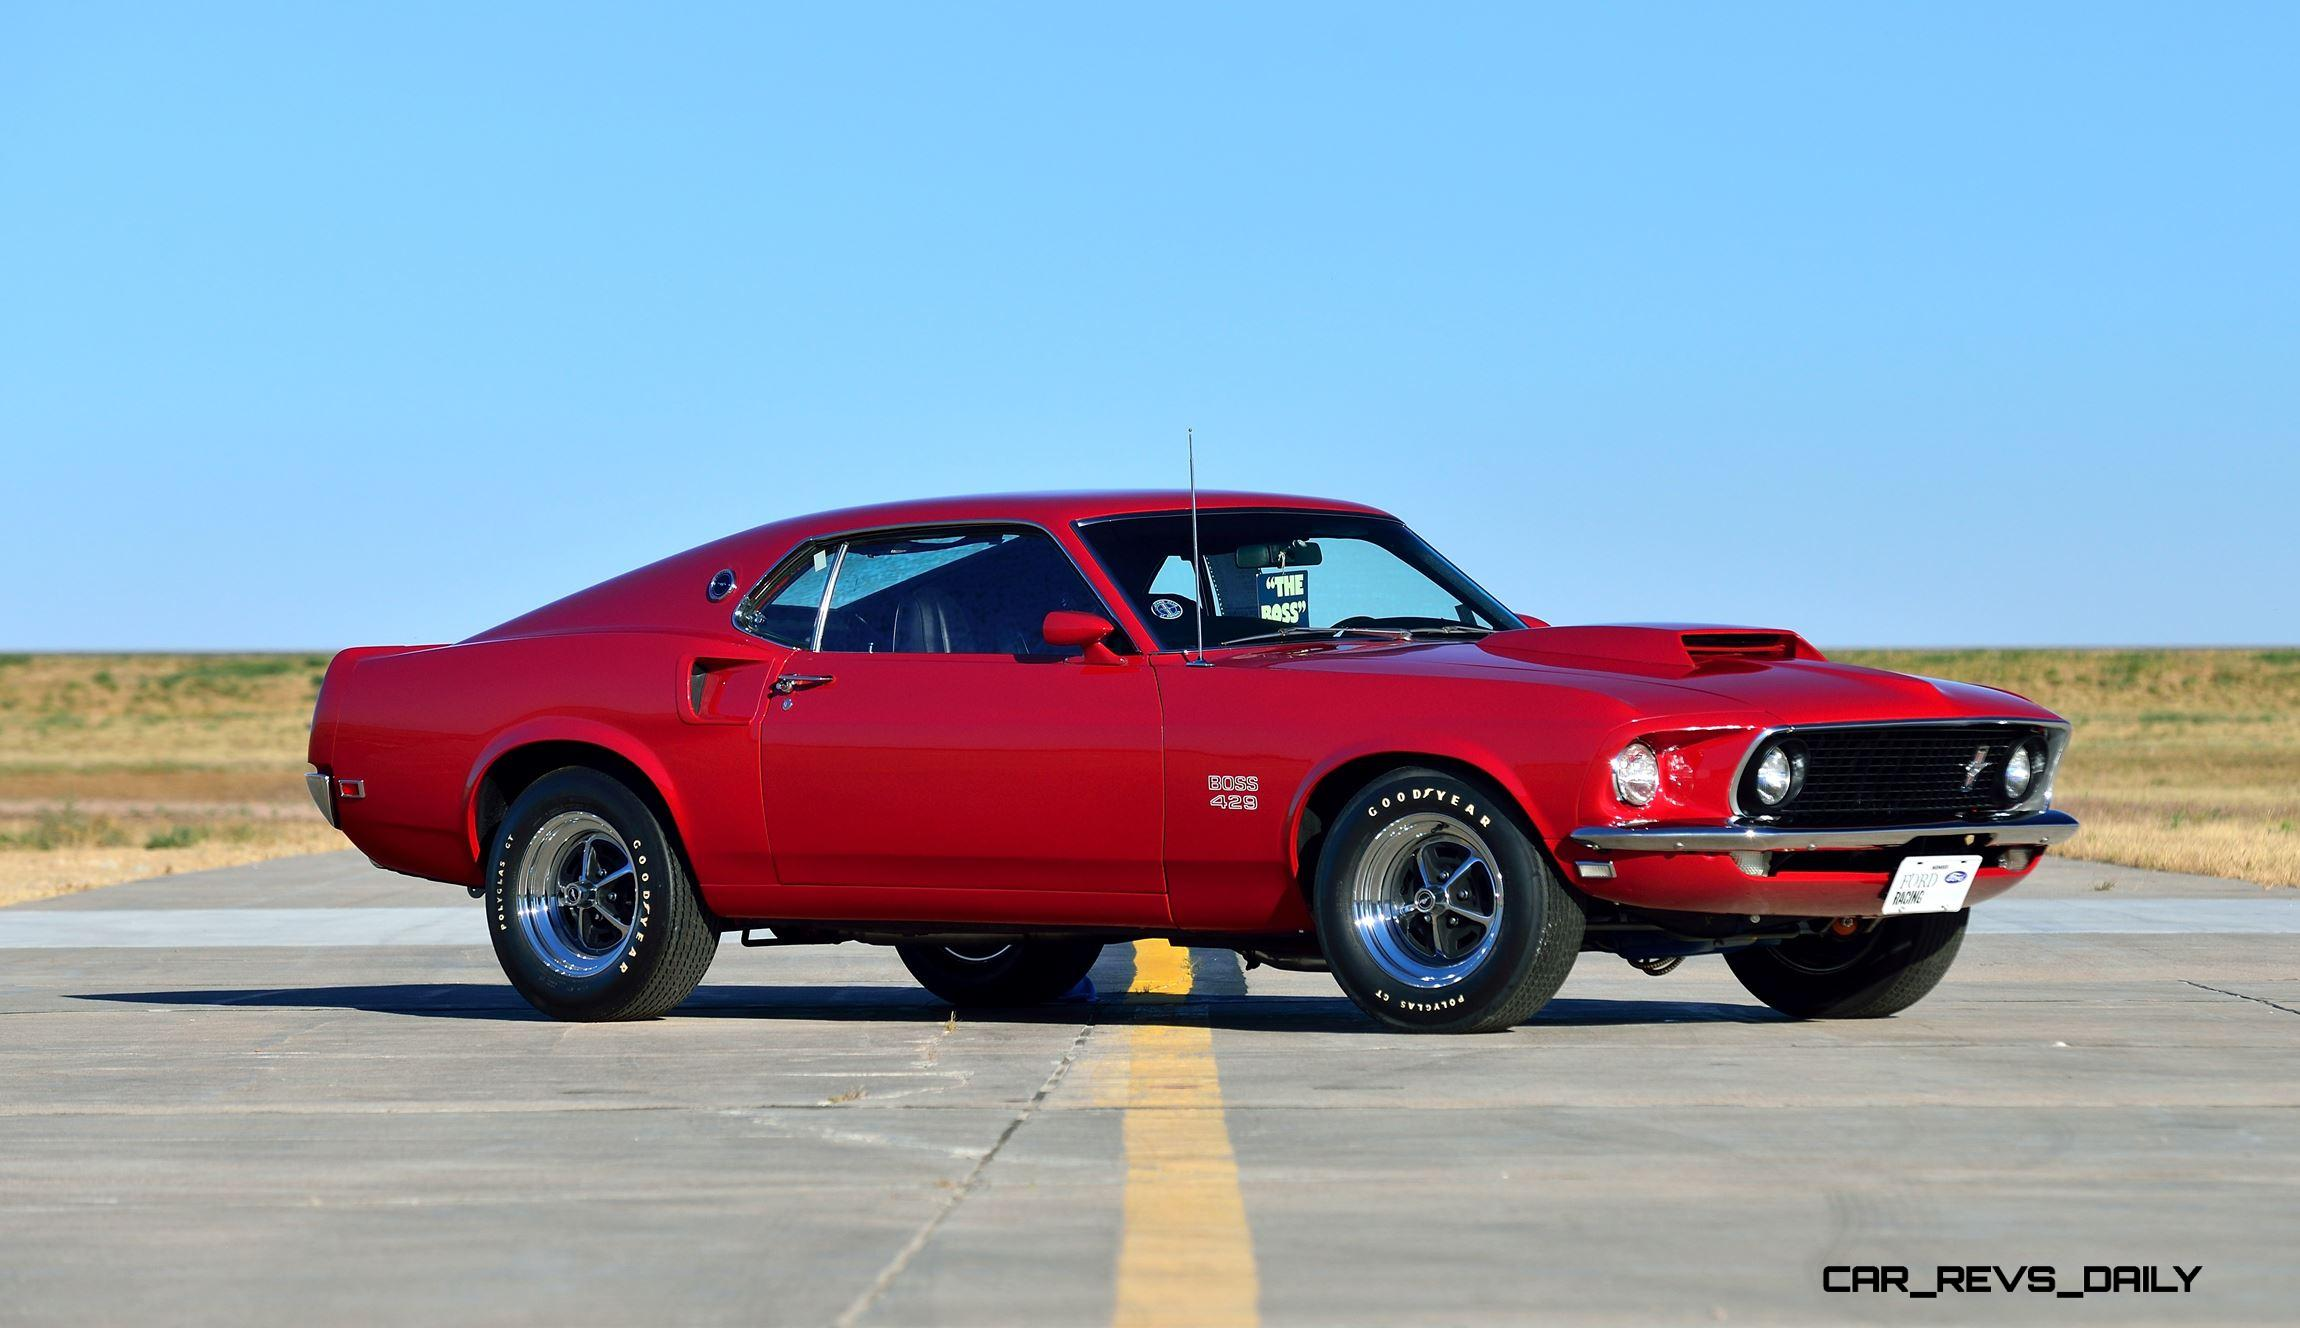 mecum 2016 musclecars 1969 ford mustang boss 429 fastback in candyapple red. Black Bedroom Furniture Sets. Home Design Ideas